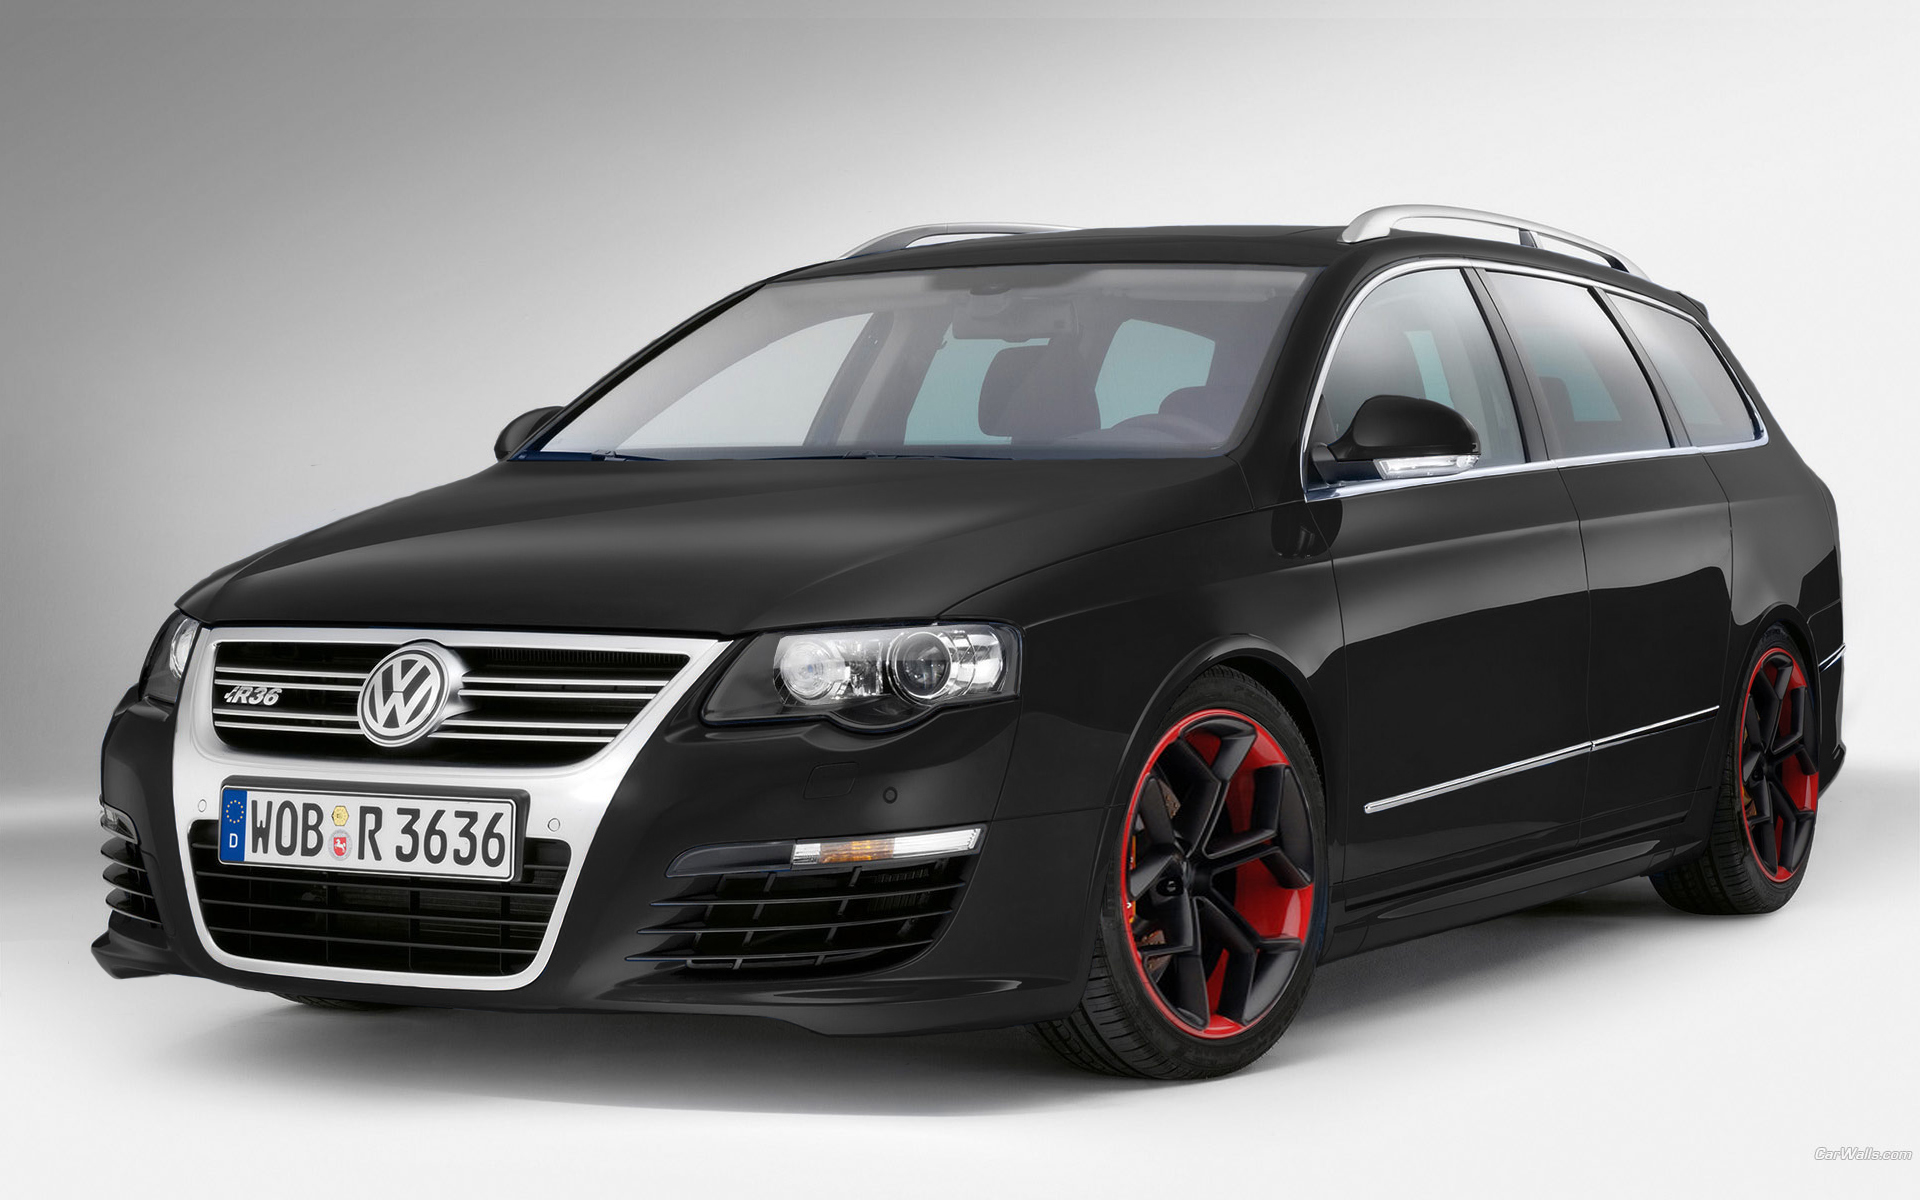 2008 volkswagen passat variant r36 related infomation specifications weili automotive network. Black Bedroom Furniture Sets. Home Design Ideas